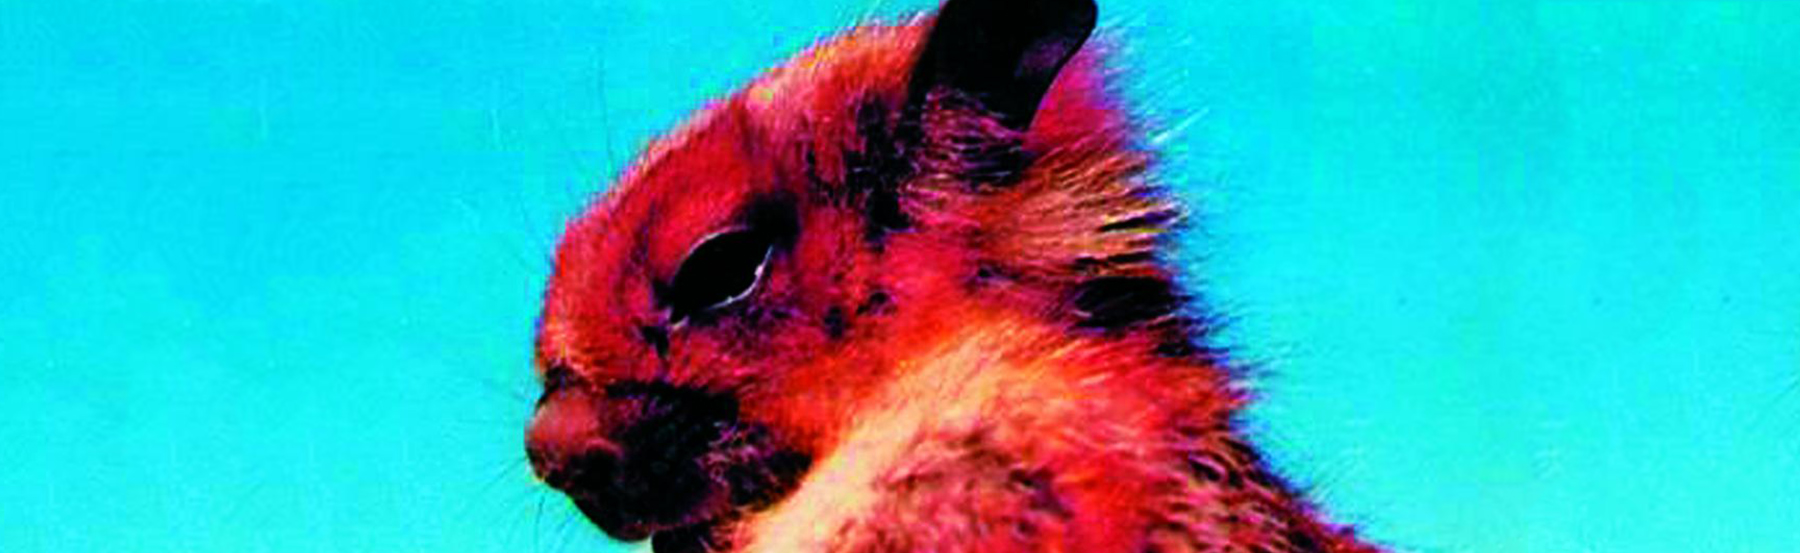 The Namdapha Flying Squirrel was last seen in 1981 in India.